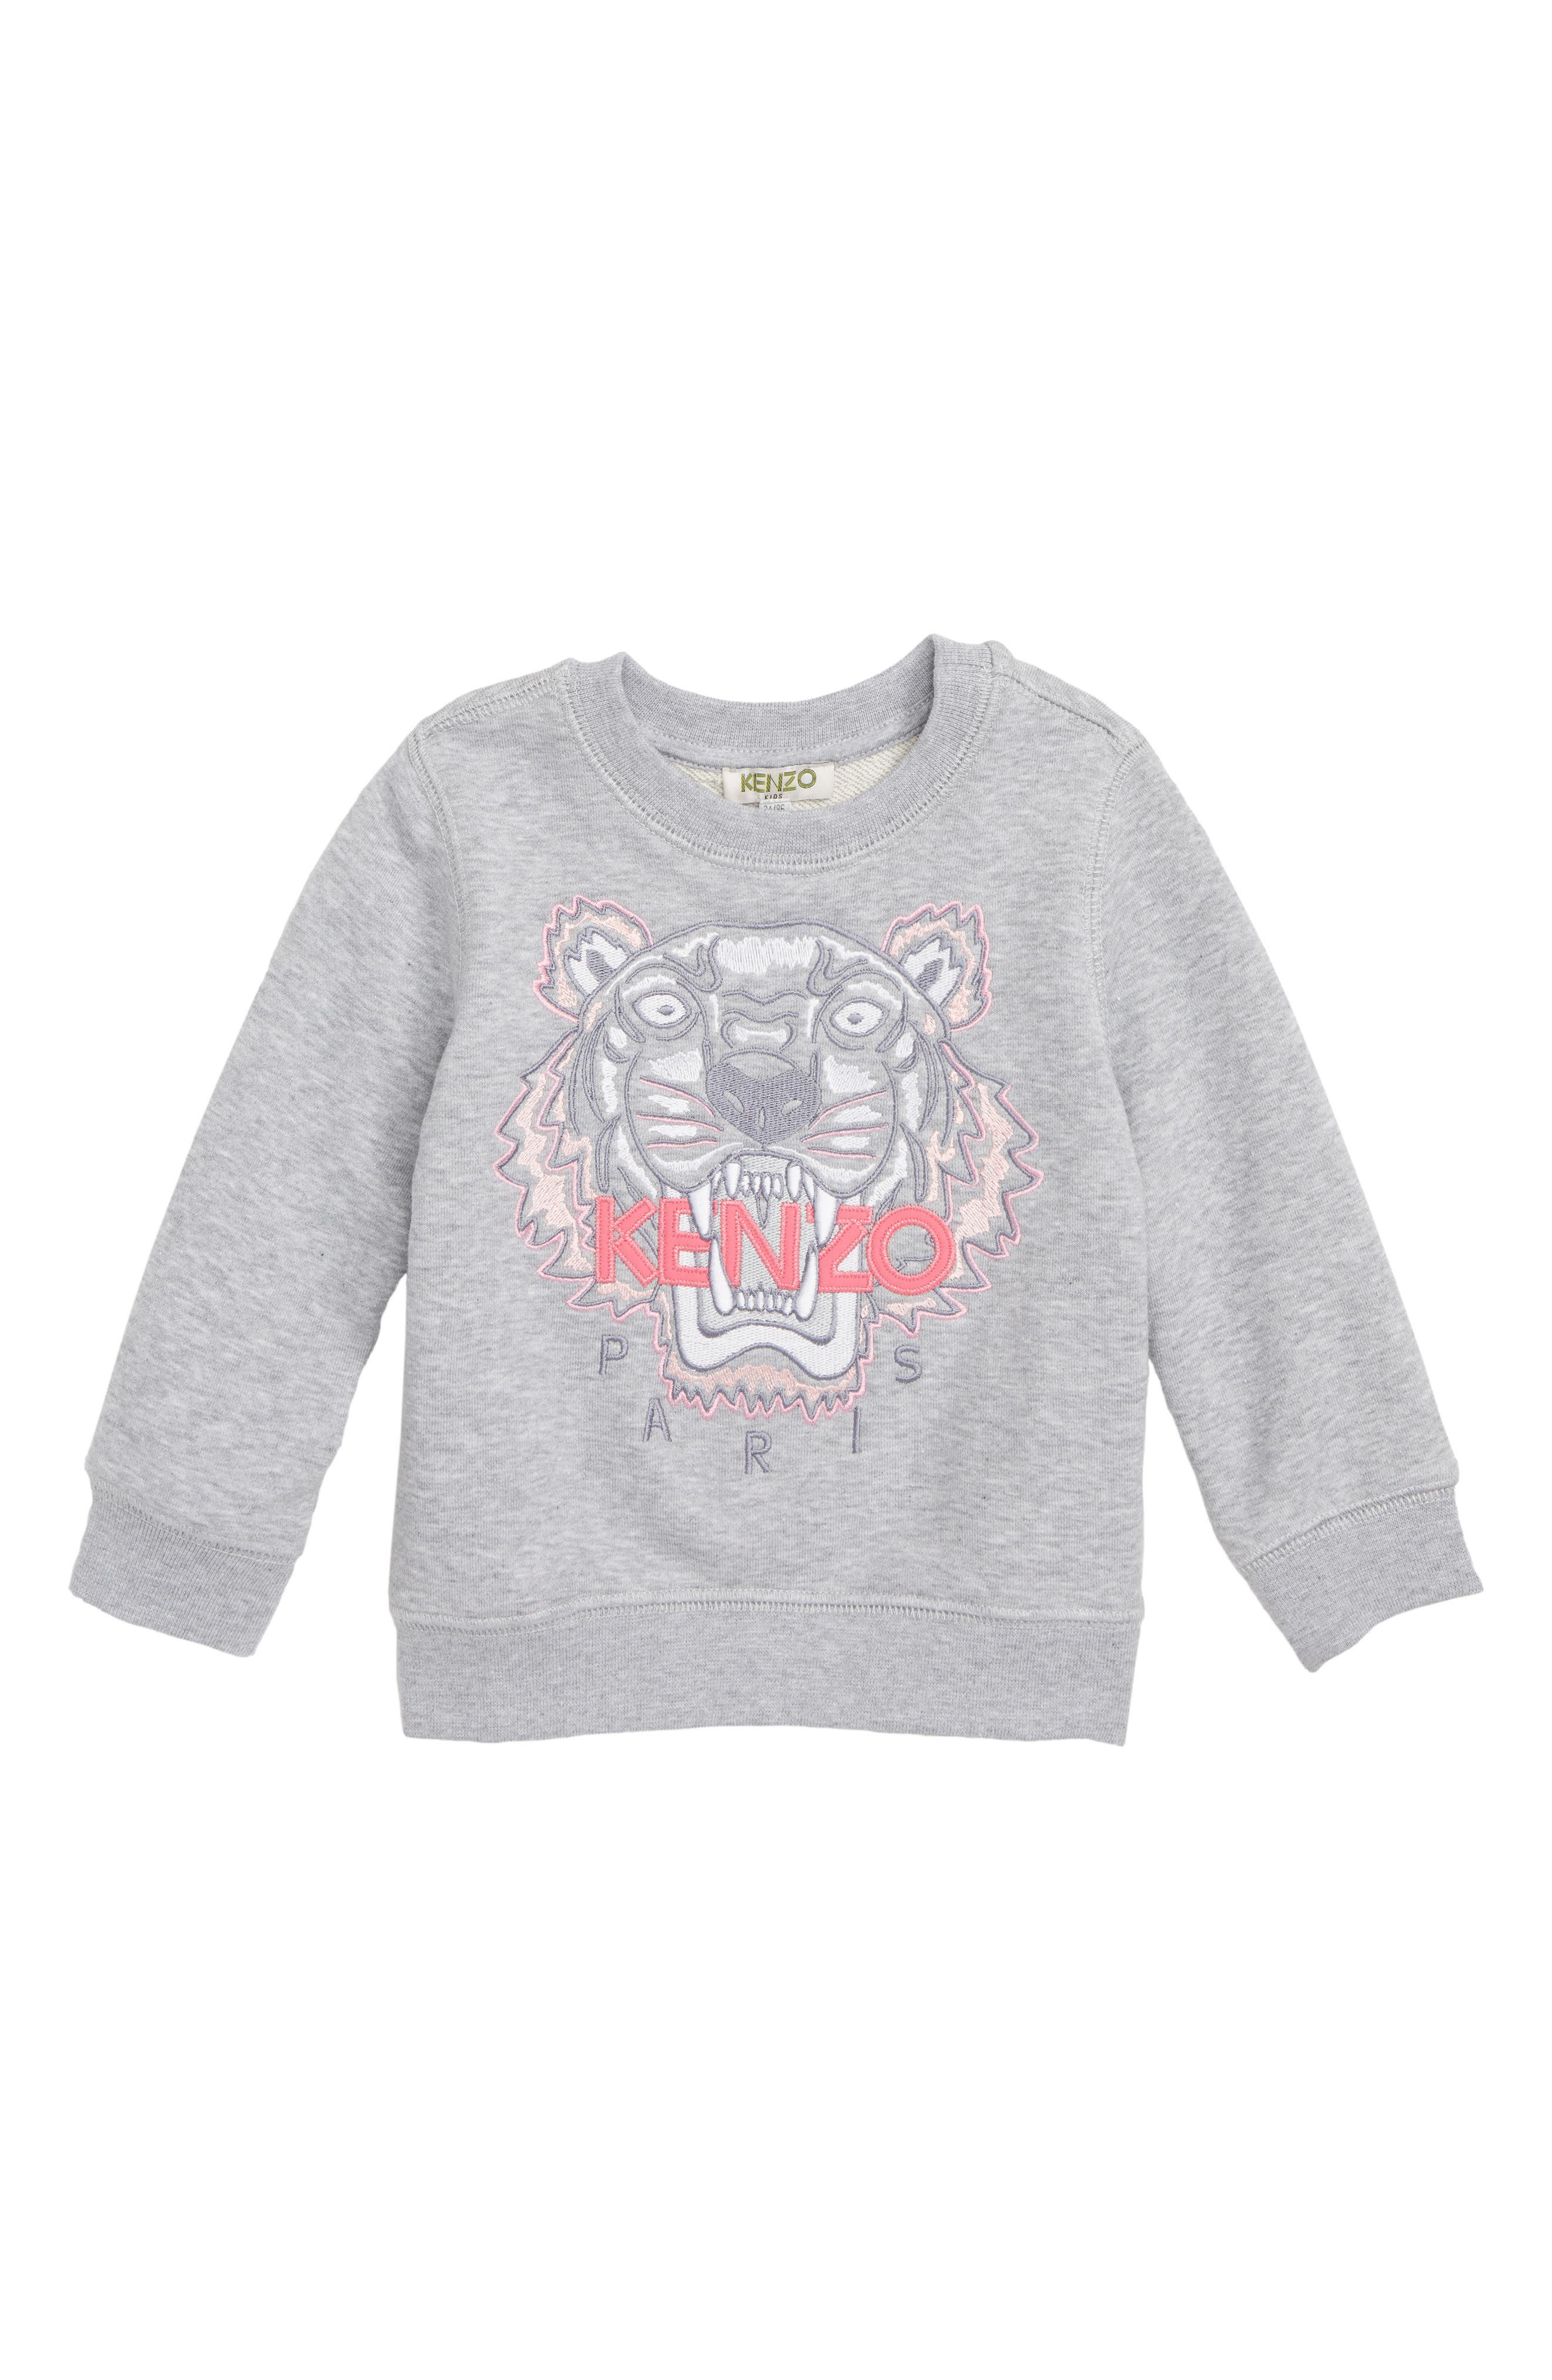 KENZO, Tiger Embroidered Sweatshirt, Main thumbnail 1, color, MARLE GREY